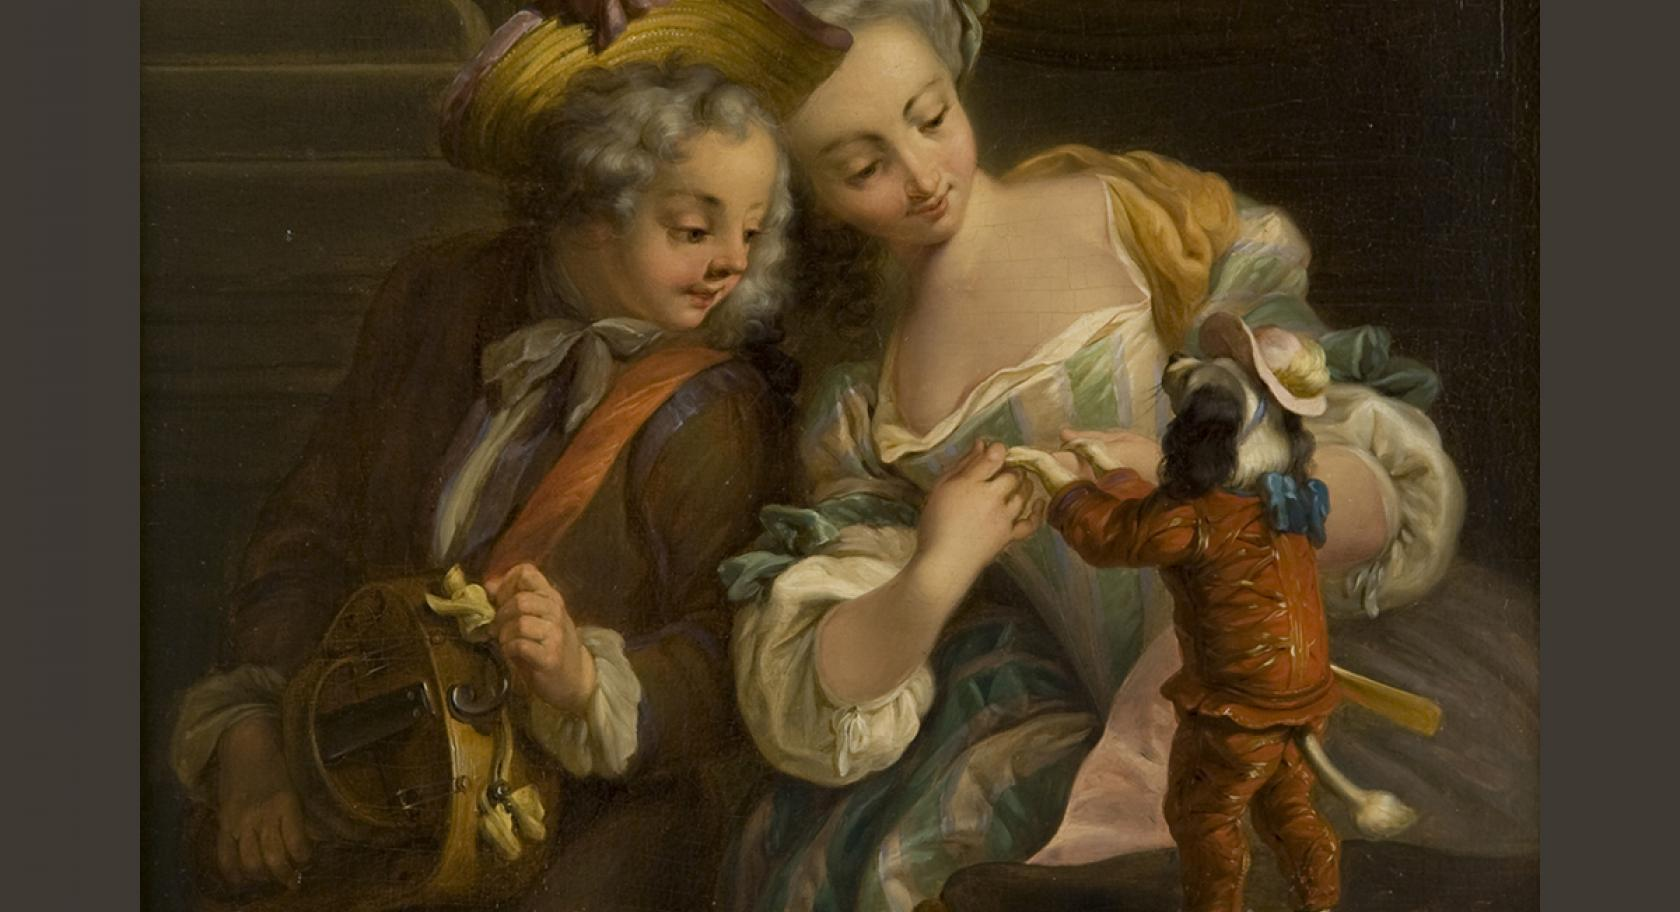 Charles Dominique Eisen, (French, 1720-1778), Le chien dansant (The Dancing Dog), ca. 1740-1778, oil on panel, 9x7 5/8 in., gift of Val A. Browning, The Val A. Browning Memorial Collection of 500 Years of European Masterworks, UMFA1993.034.009